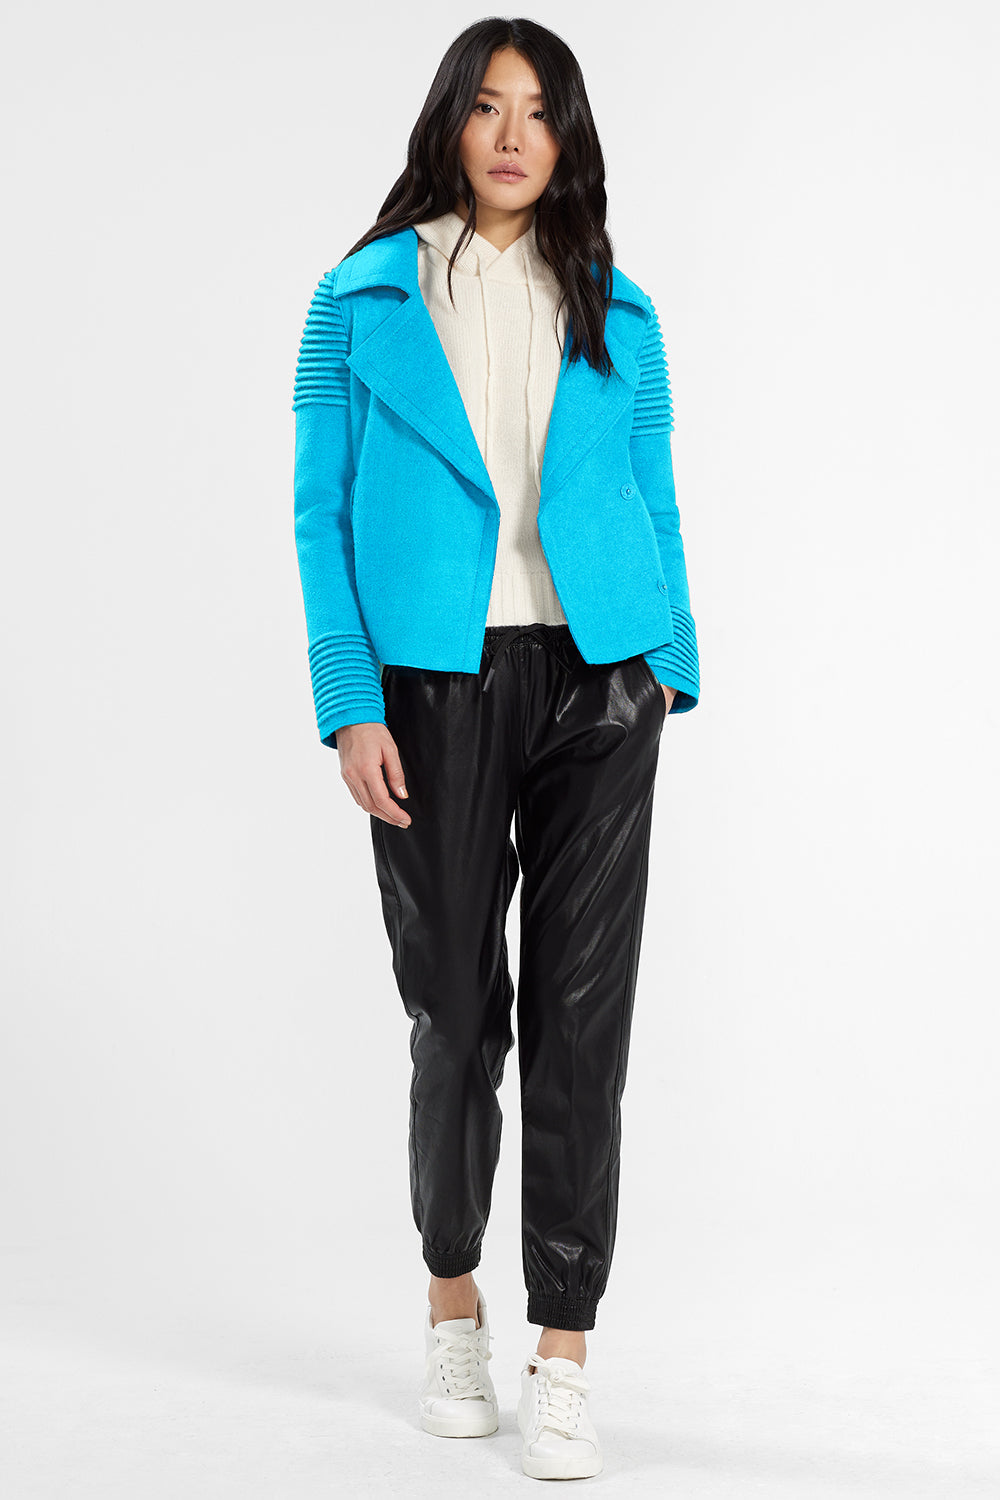 Sentaler Bomber Jacket with Ribbed Shoulders and Cuffs featured in Superfine Alpaca and available in AI Aqua. Seen open.